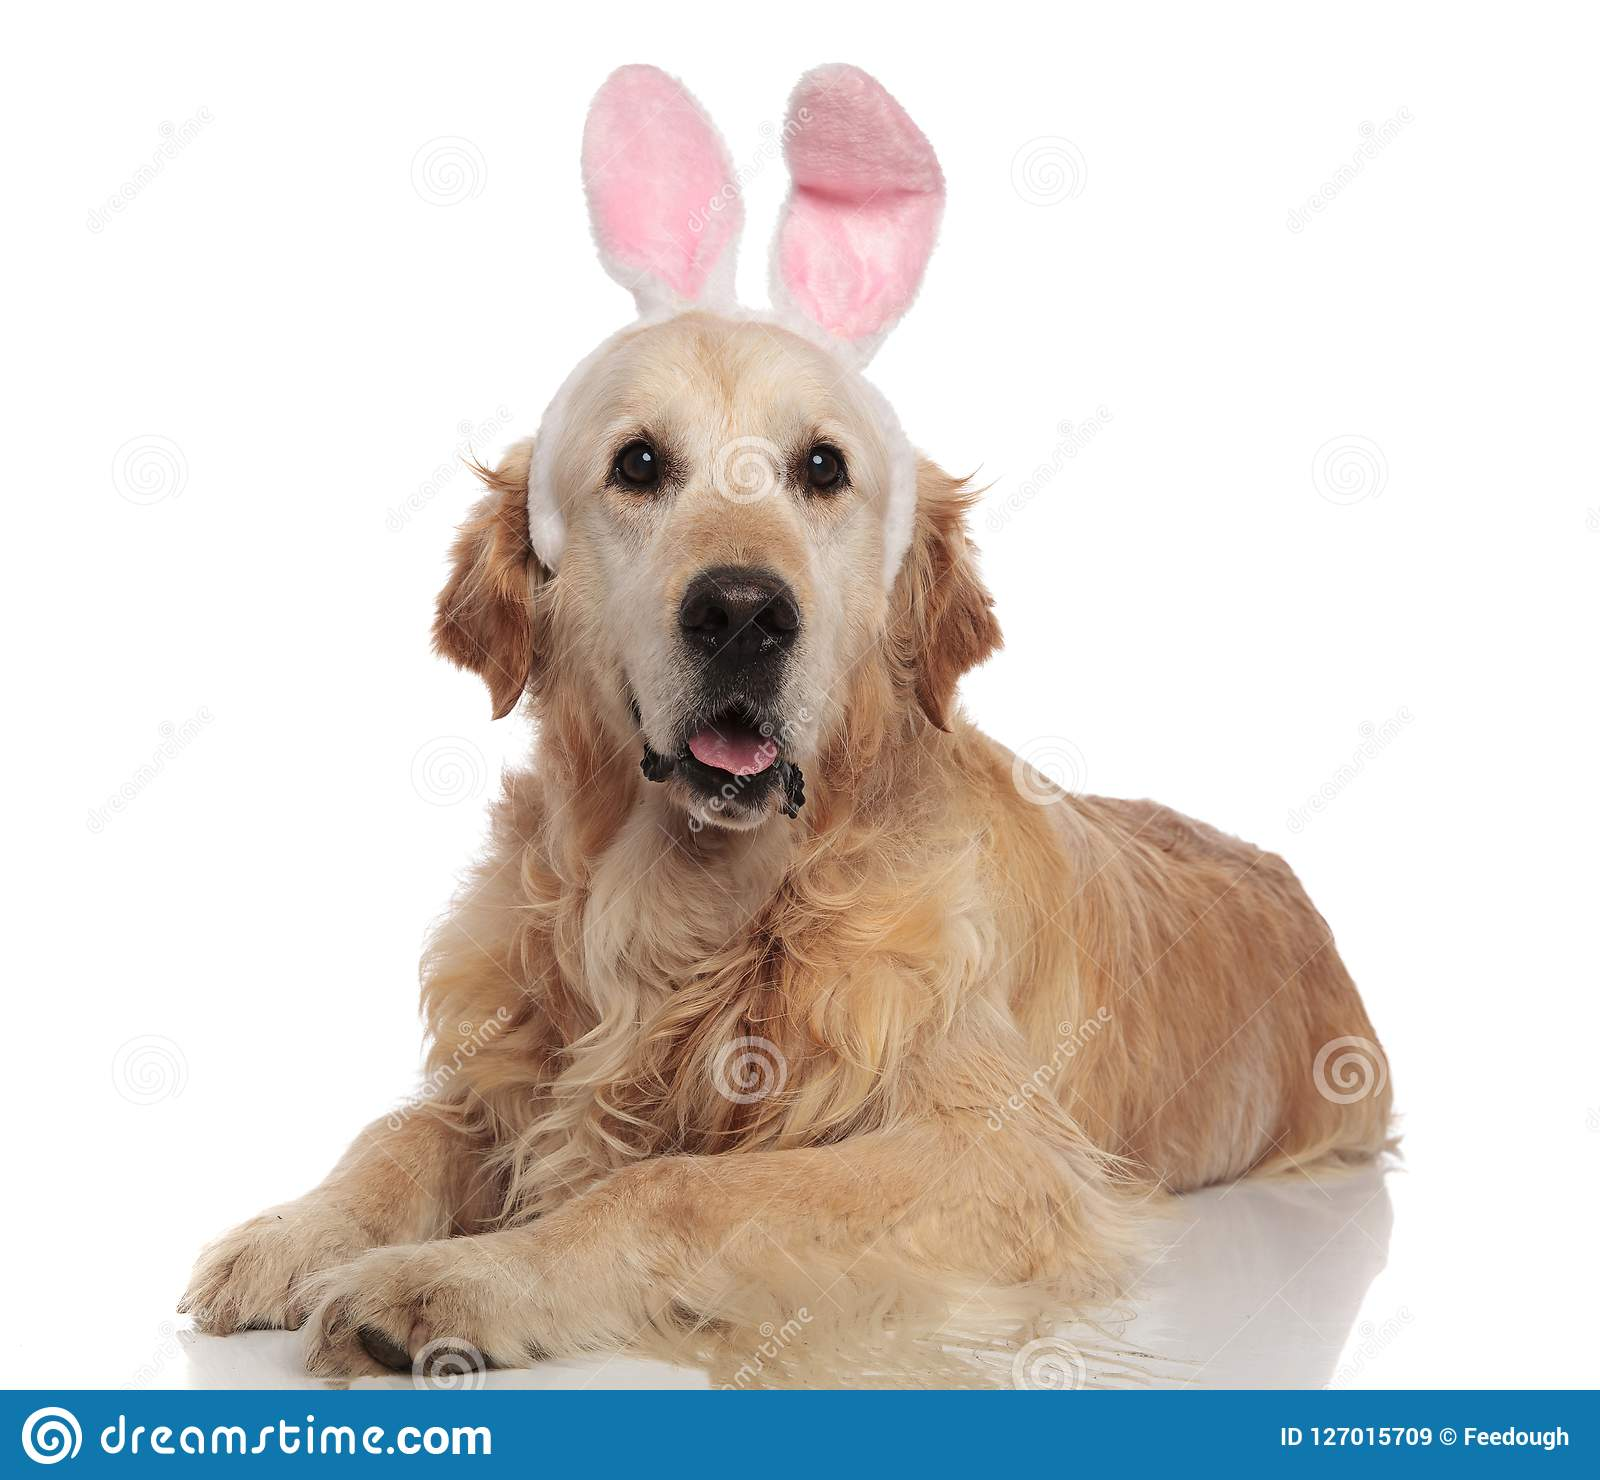 129 Golden Retriever Halloween Costume Photos Free Royalty Free Stock Photos From Dreamstime